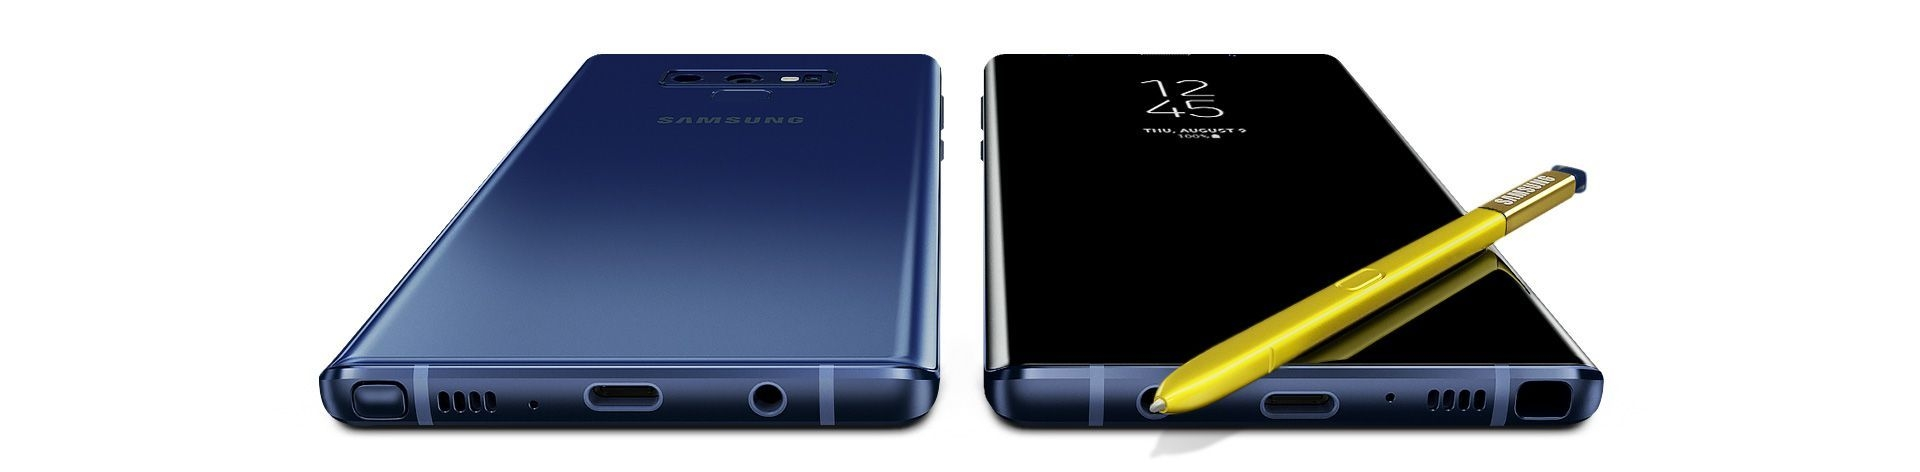 Two Galaxy Note9s, one seen from the rear and the other seen from the front, with the S Pen laying on the screen